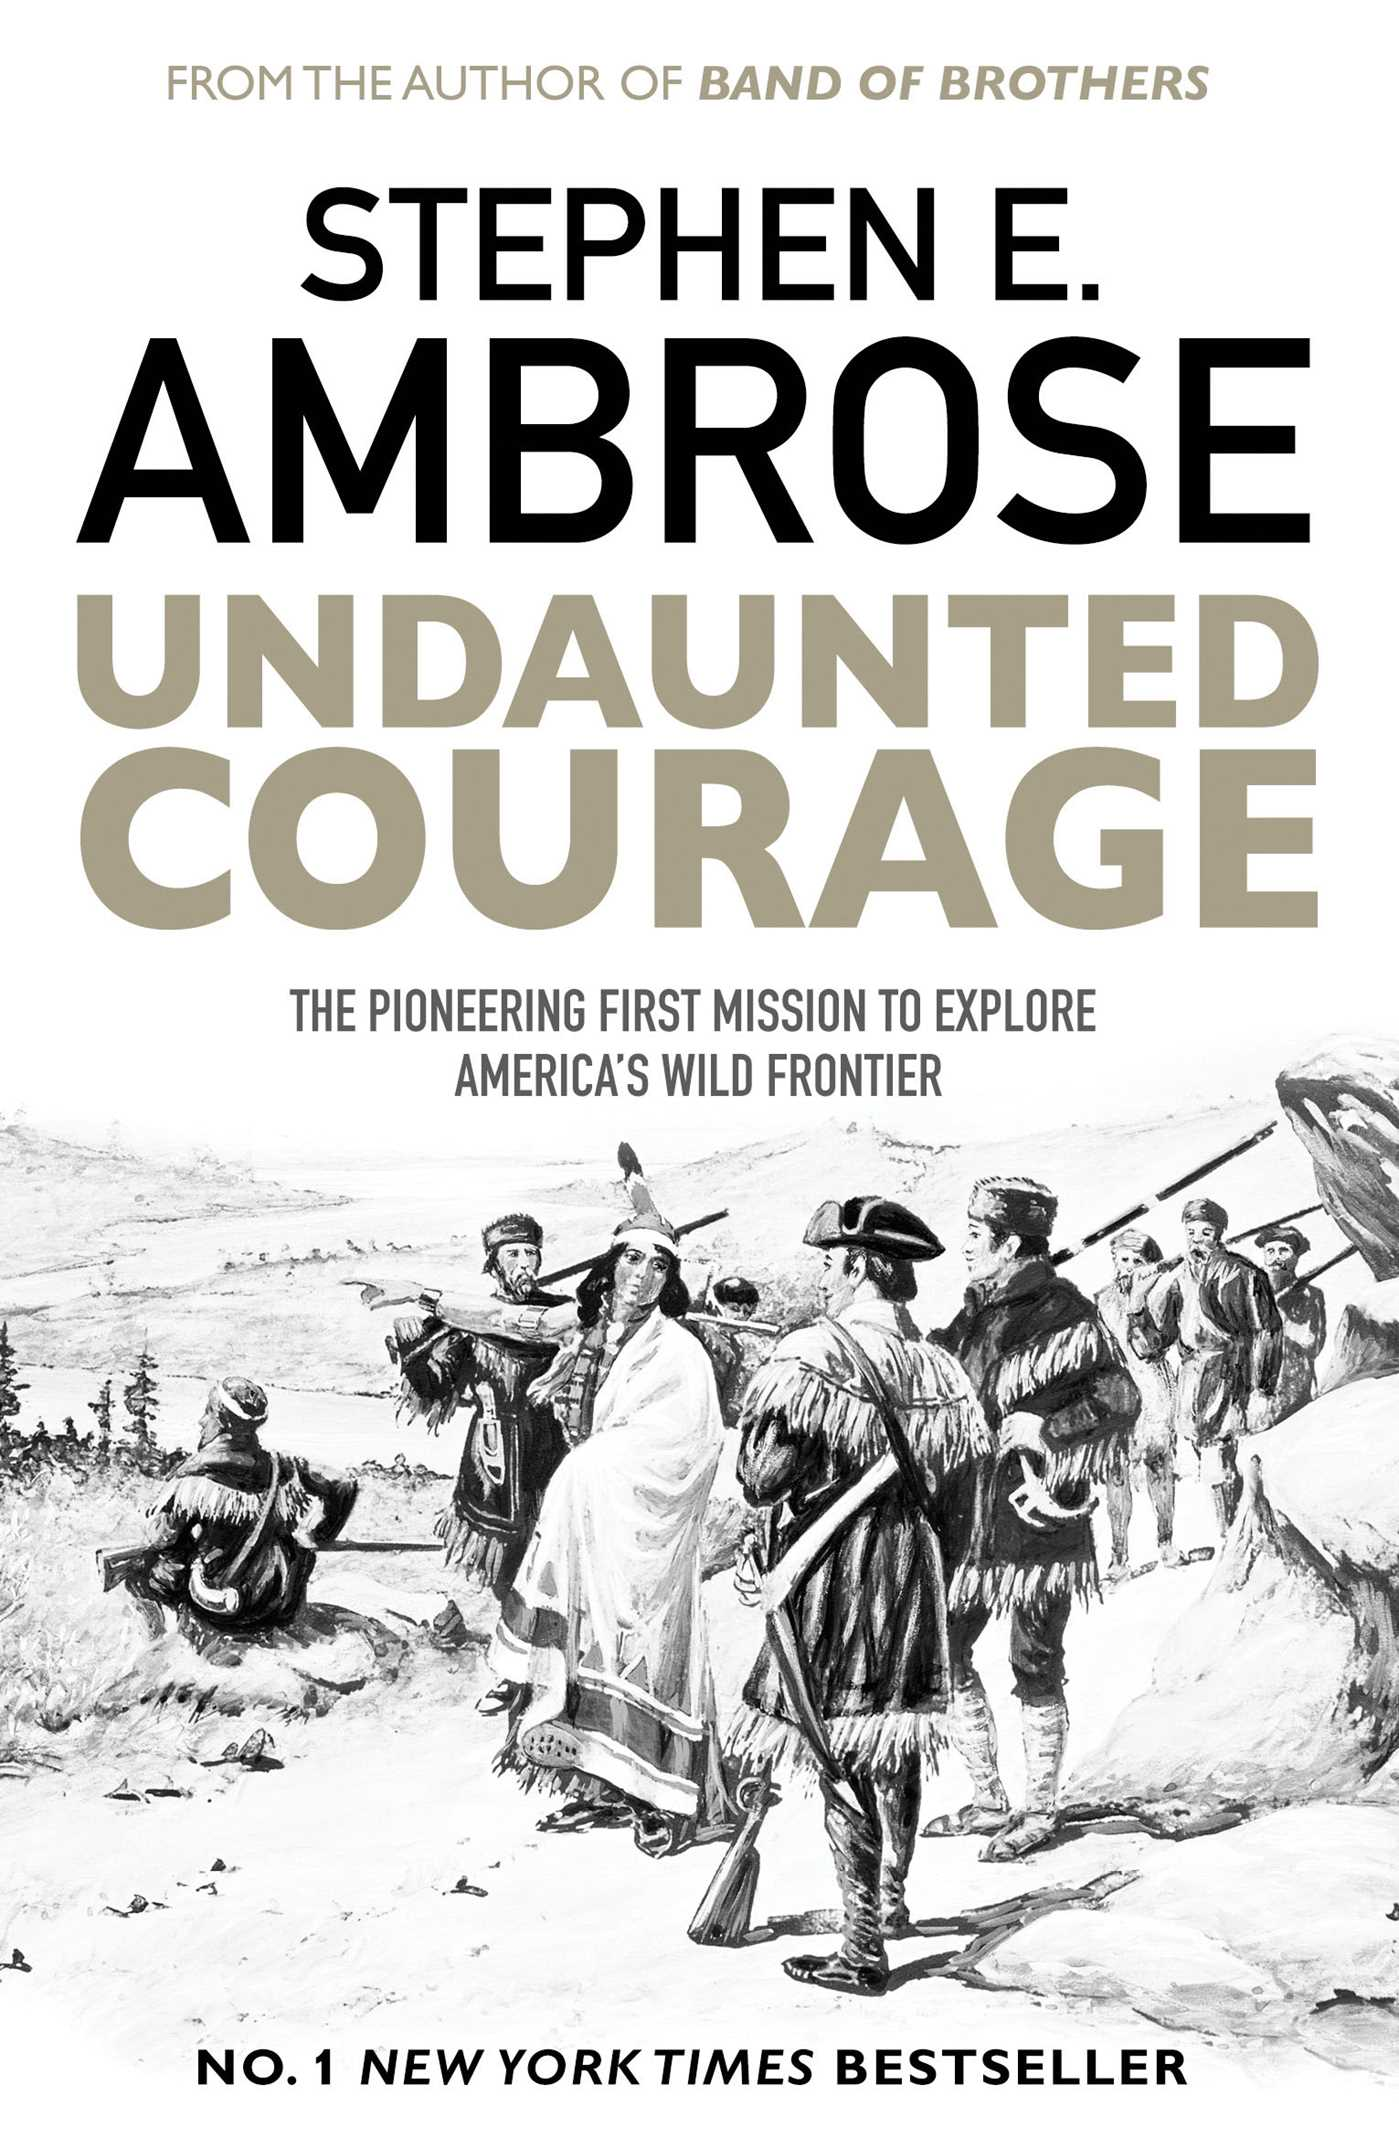 UNDAUNTED COURAGE by Stephen E Ambrose UNABRIDGED 20 Disc Audiobook CD Box Set